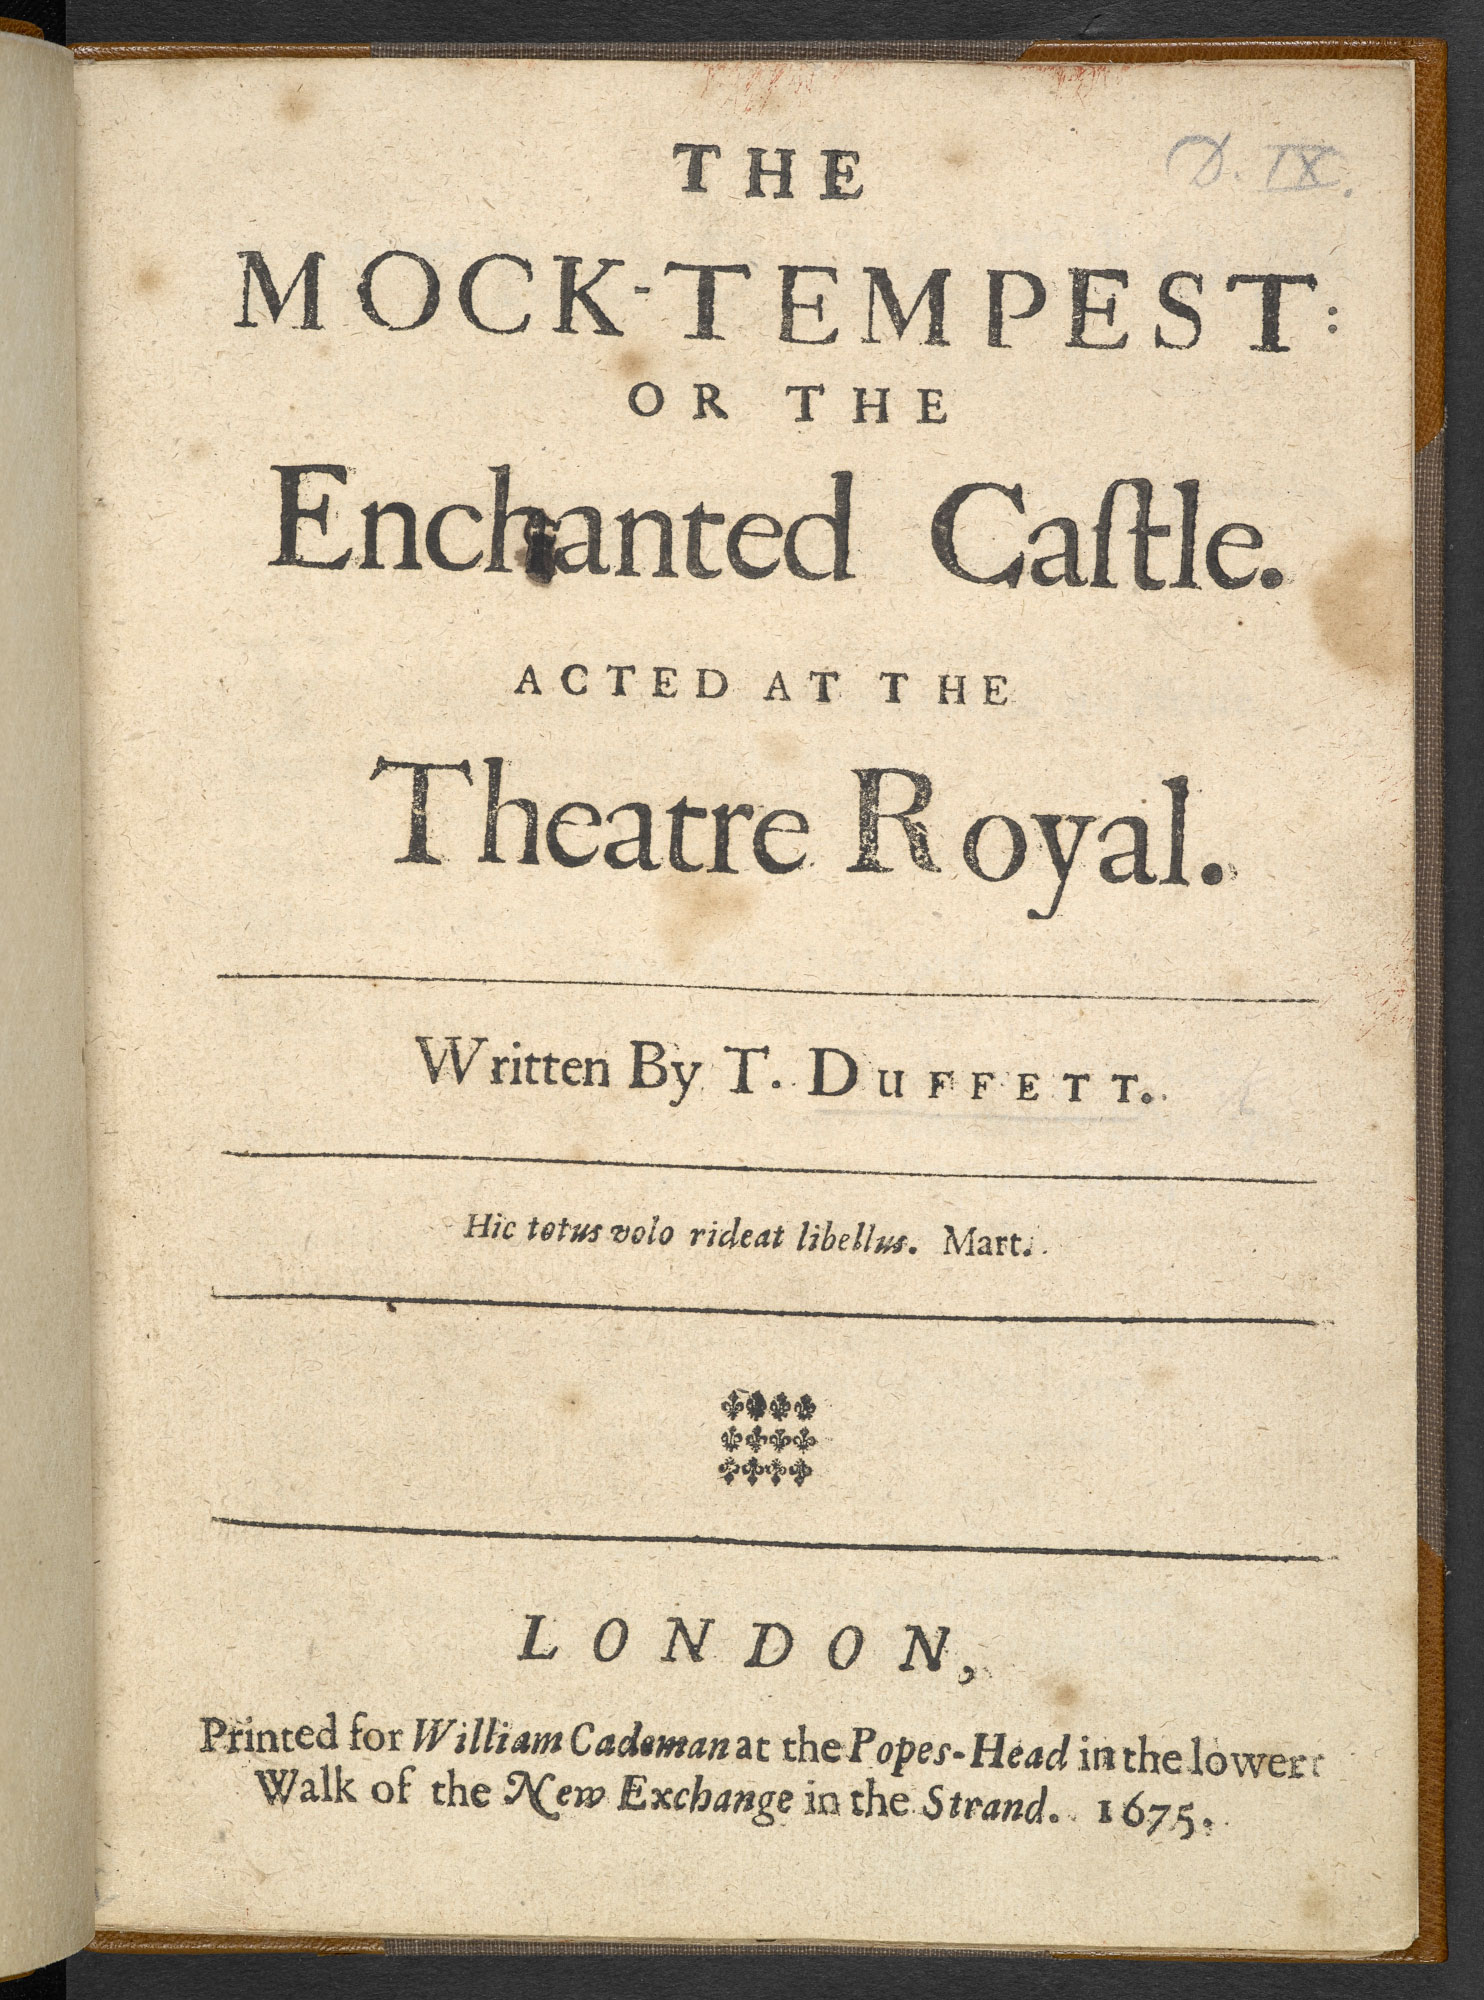 Duffett's burlesque version of The Tempest